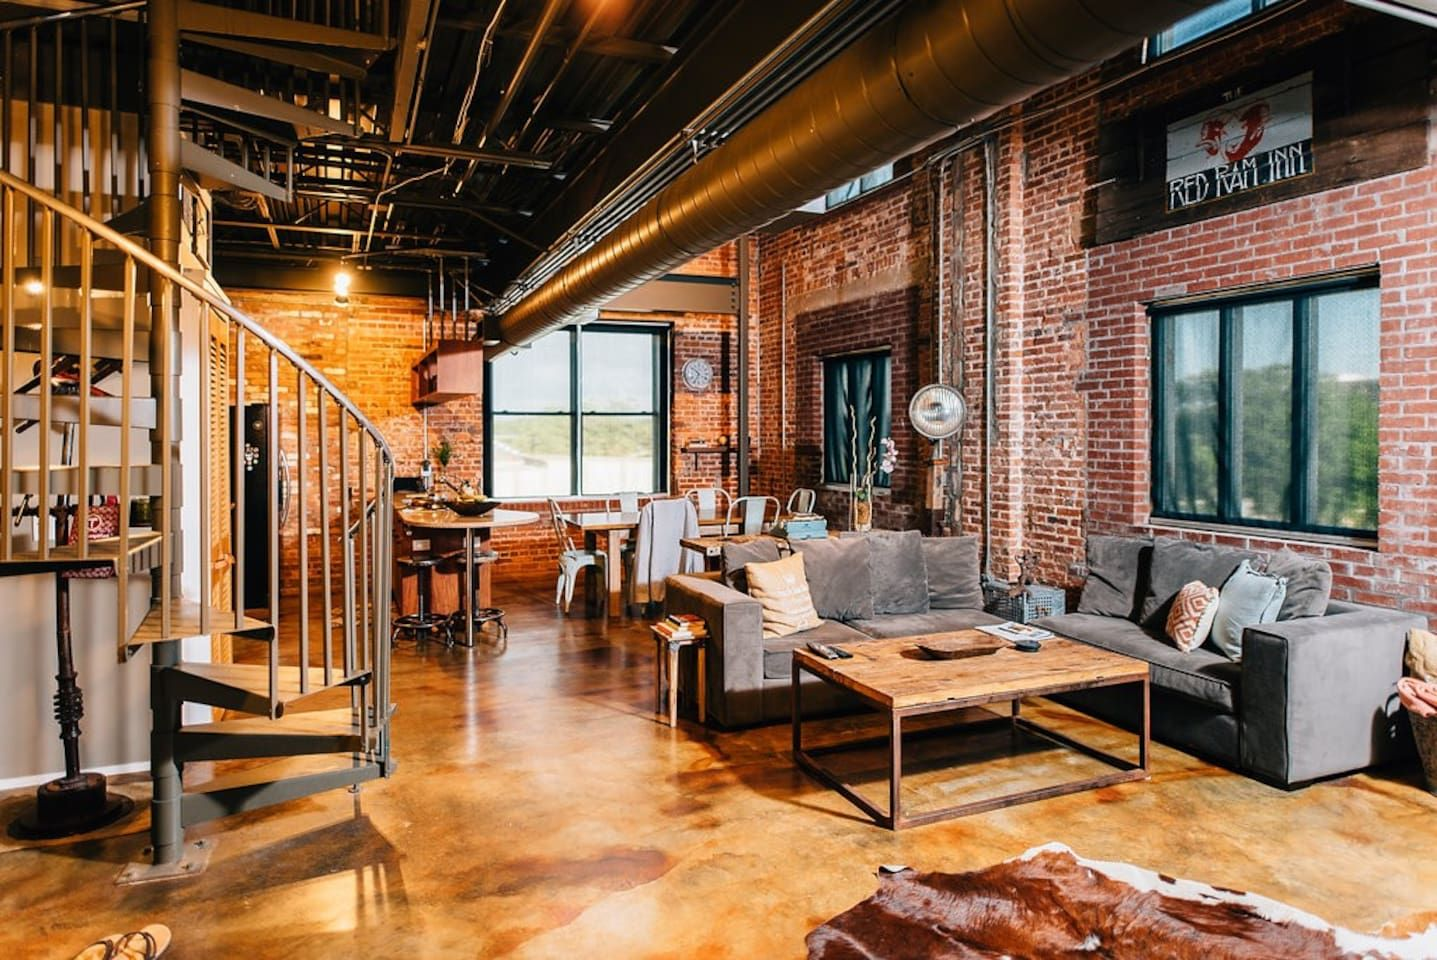 San Marco The Copper Loft Lofts For Rent In Jacksonville Get 25 Credit With Airbnb If You Sign Up With This Link Http Lofts For Rent Vacation Home Loft